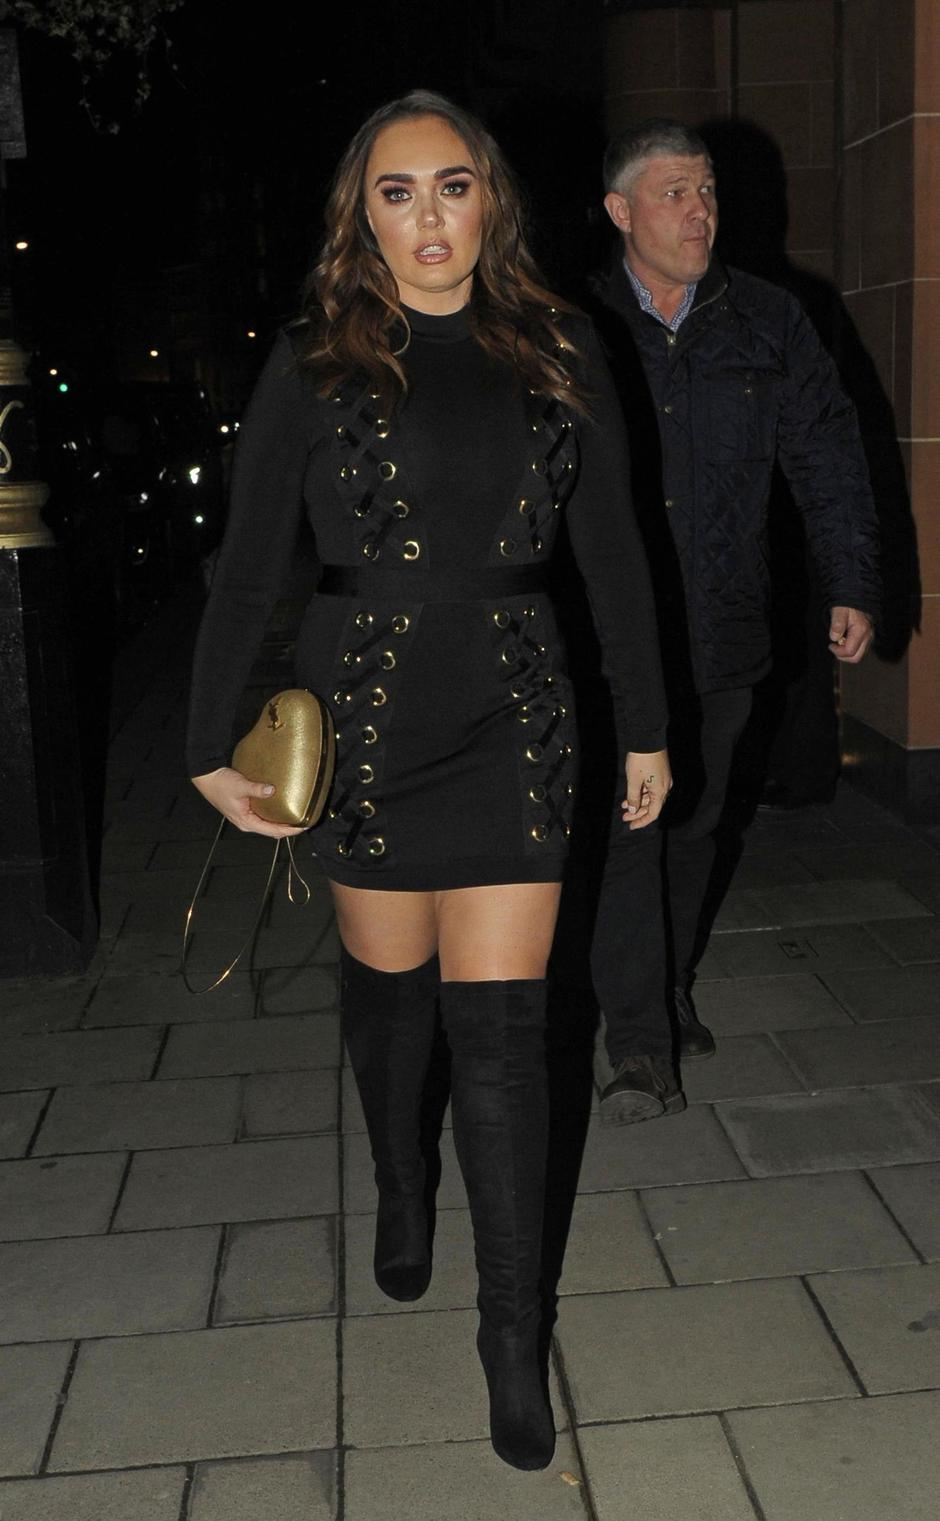 Tamara Ecclestone and Petra Ecclestone arrive at C London restaurant | Autor: BIZI, JUPA